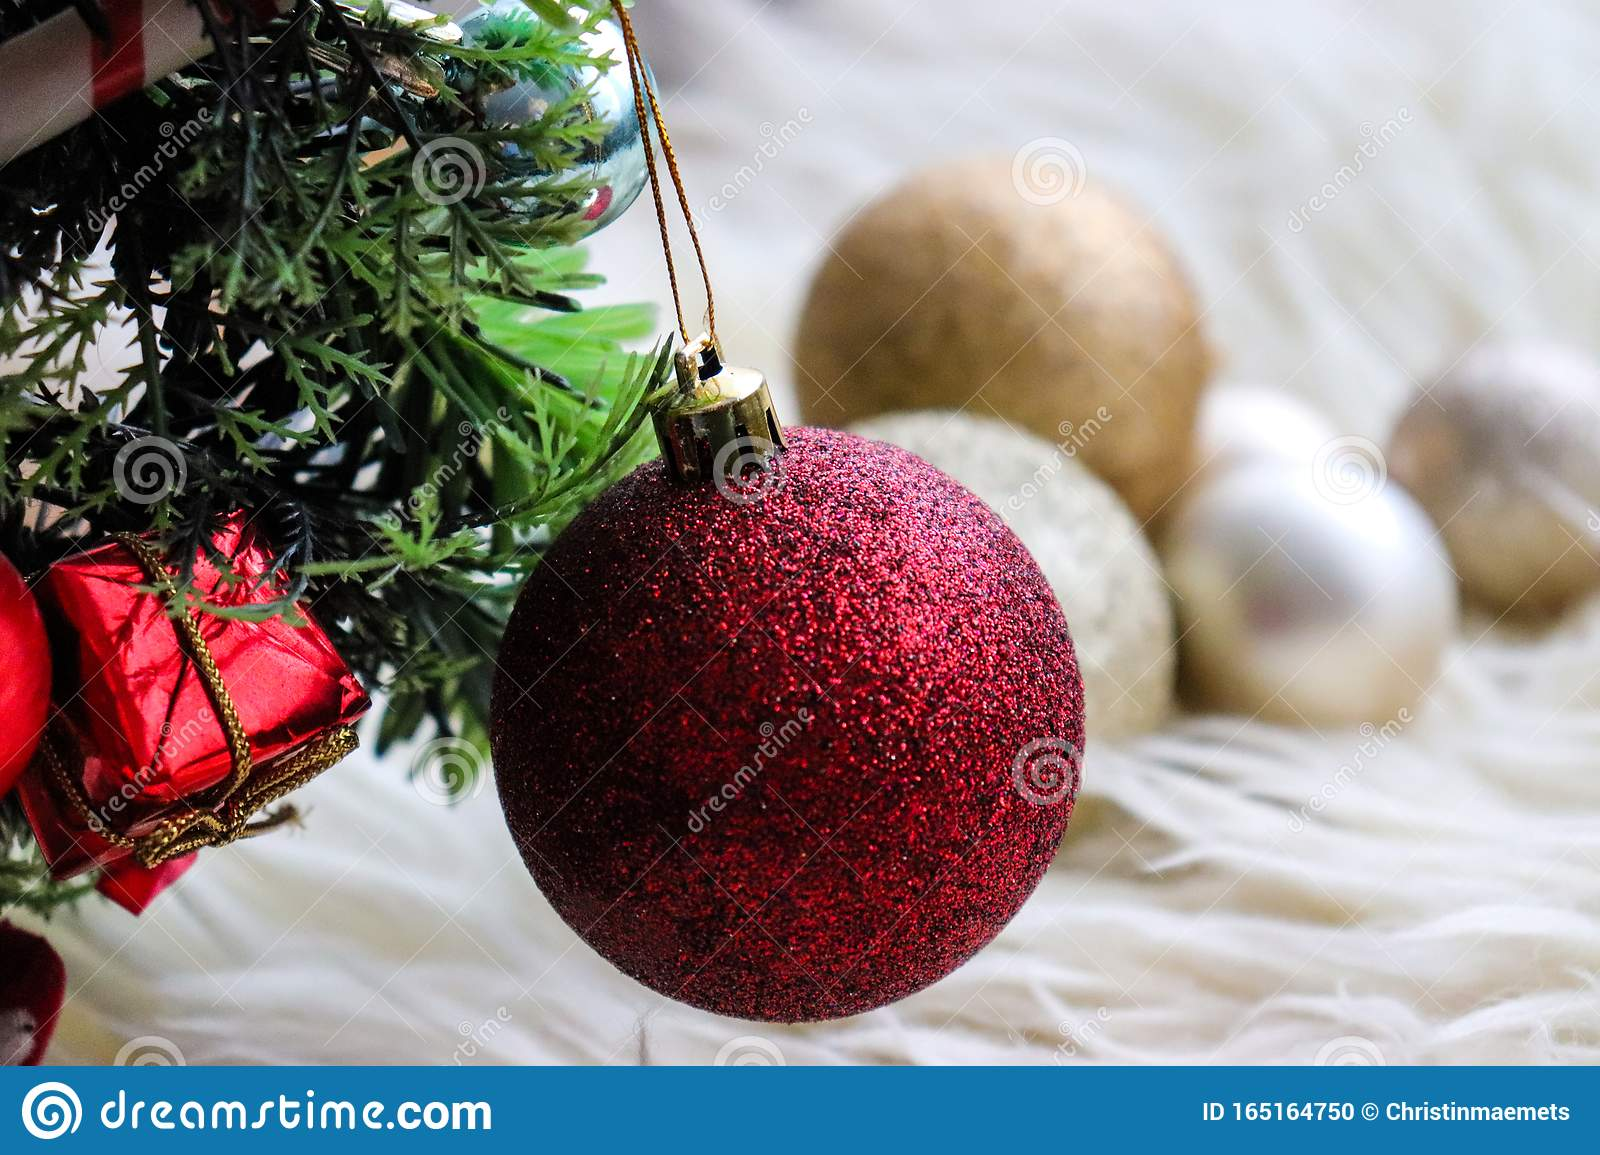 Red Gold And Silver Christmas Tree Decorations On A White Fur Carpet Glitter And Sparkle During The Holidays Stock Photo Image Of Vibes Gifts 165164750